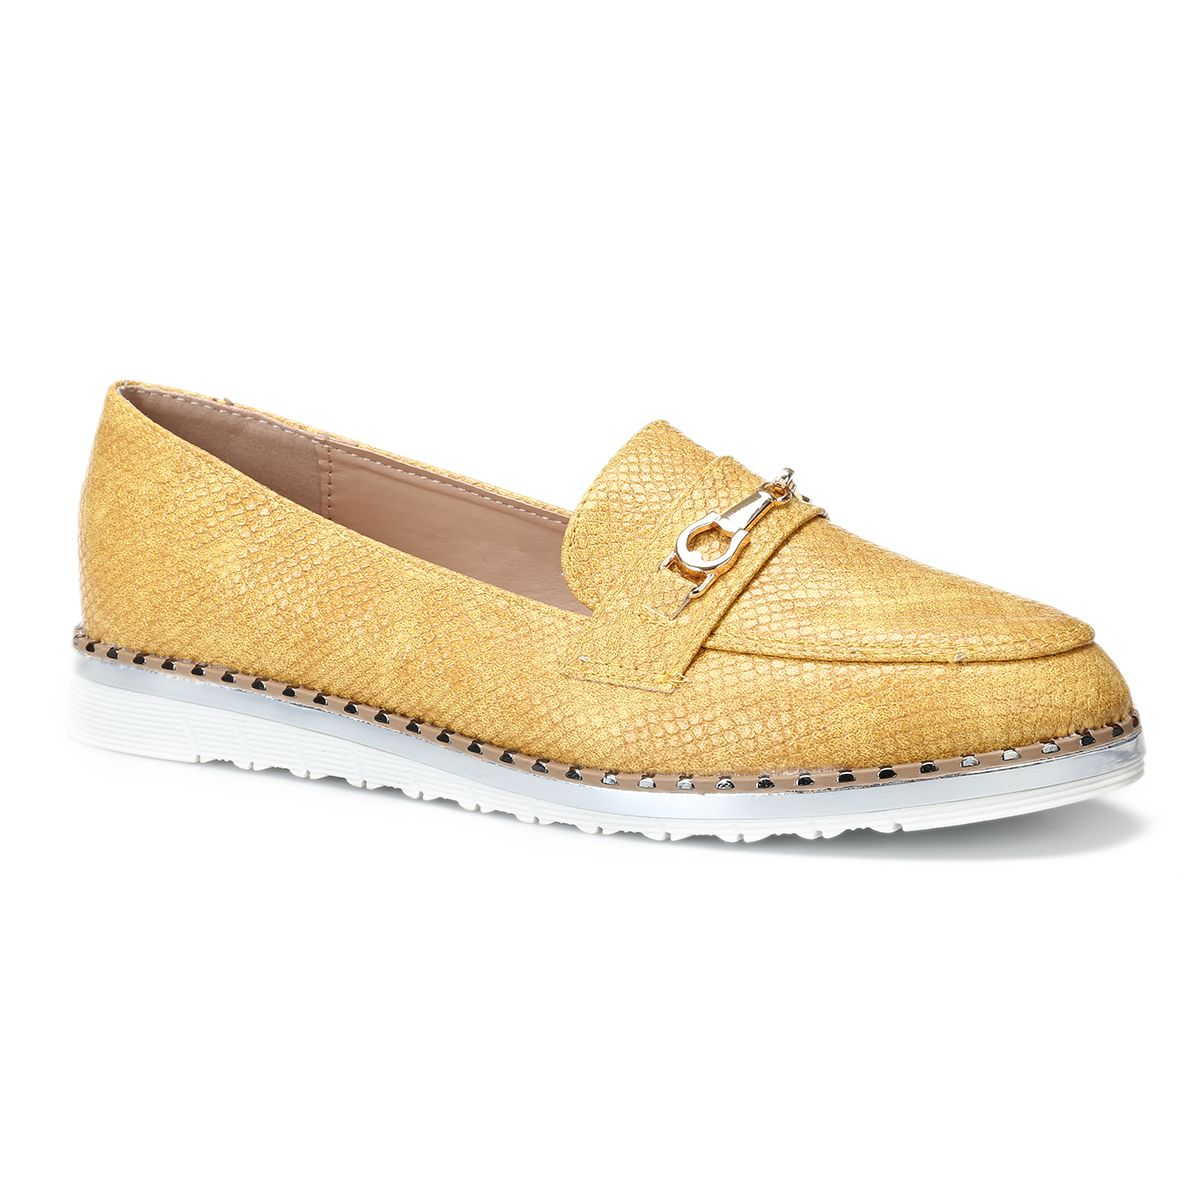 Mocassins en simili croco jaune avec bride métallique